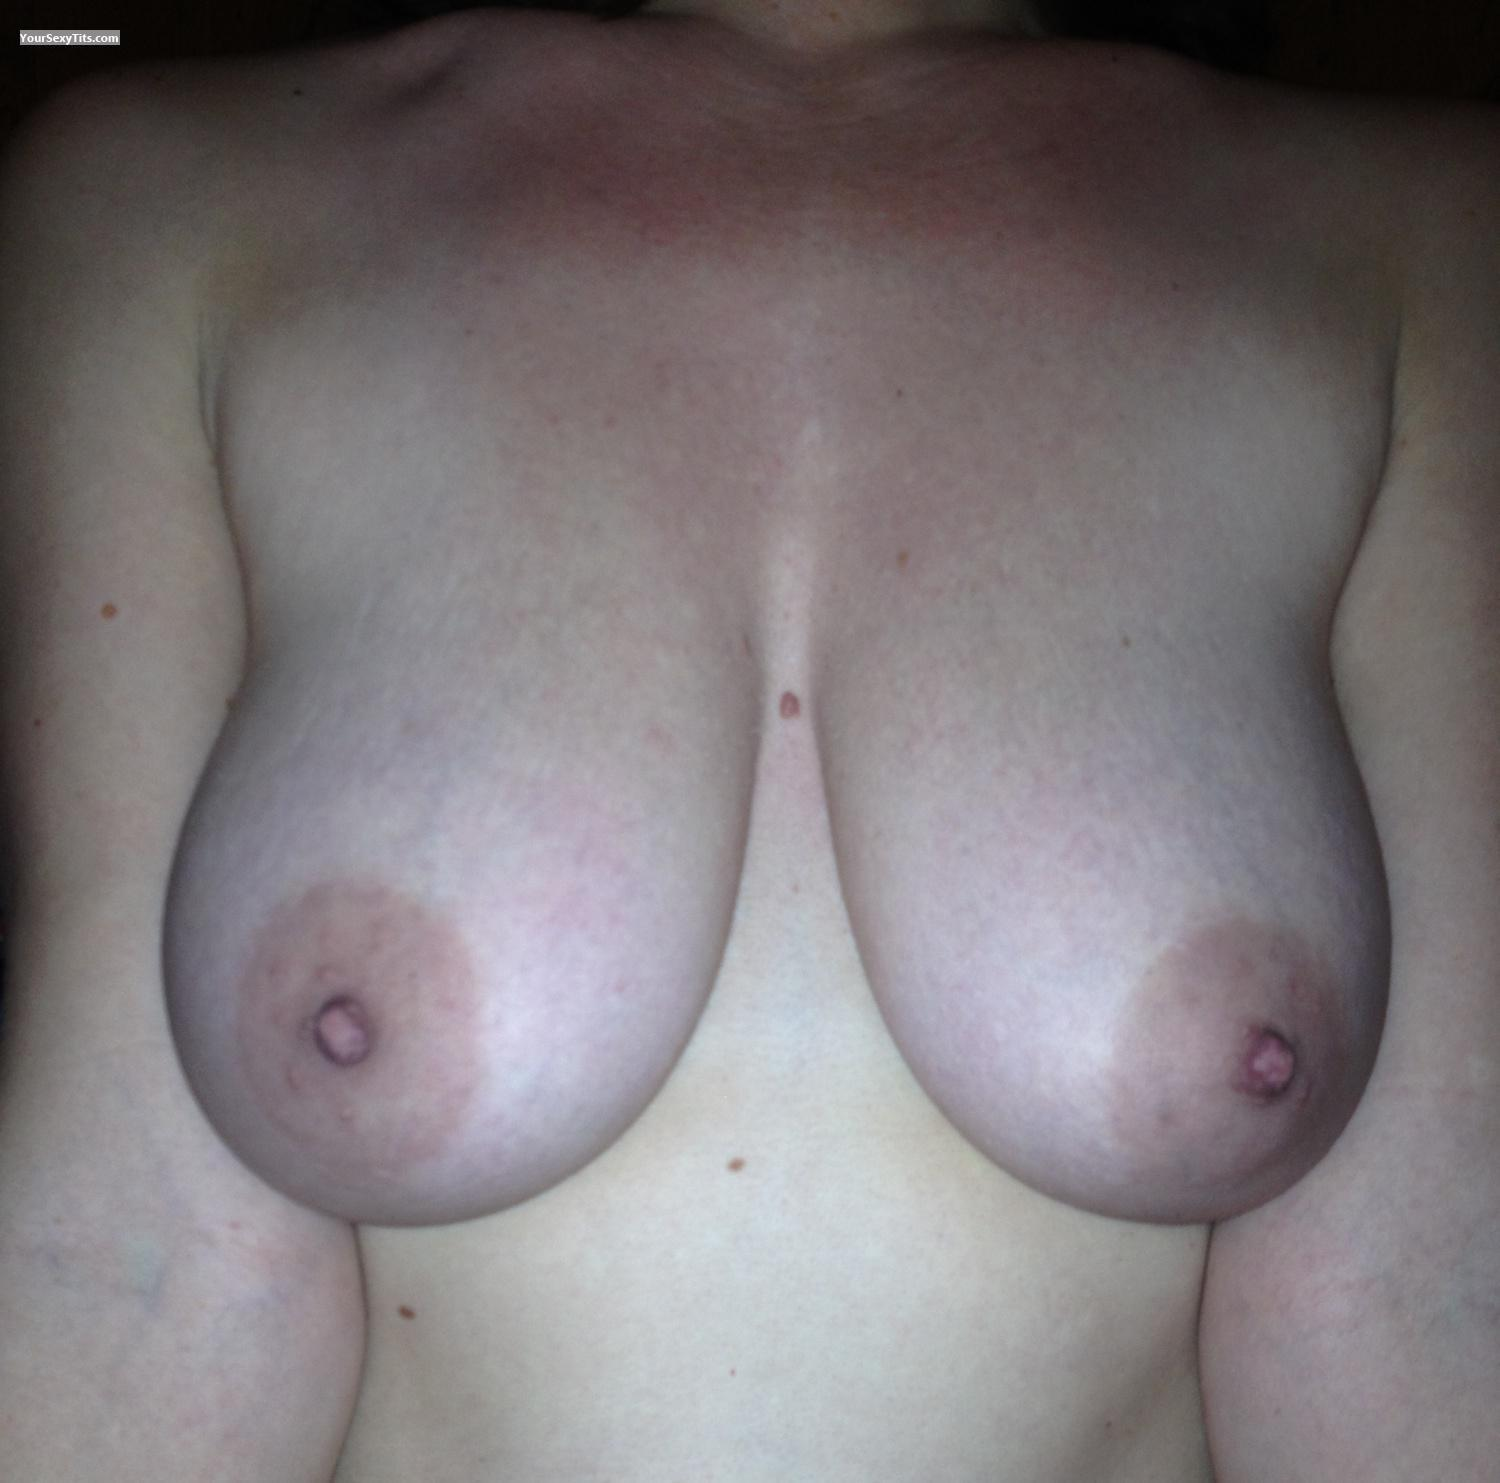 Tit Flash: Medium Tits By IPhone - Jess from United States